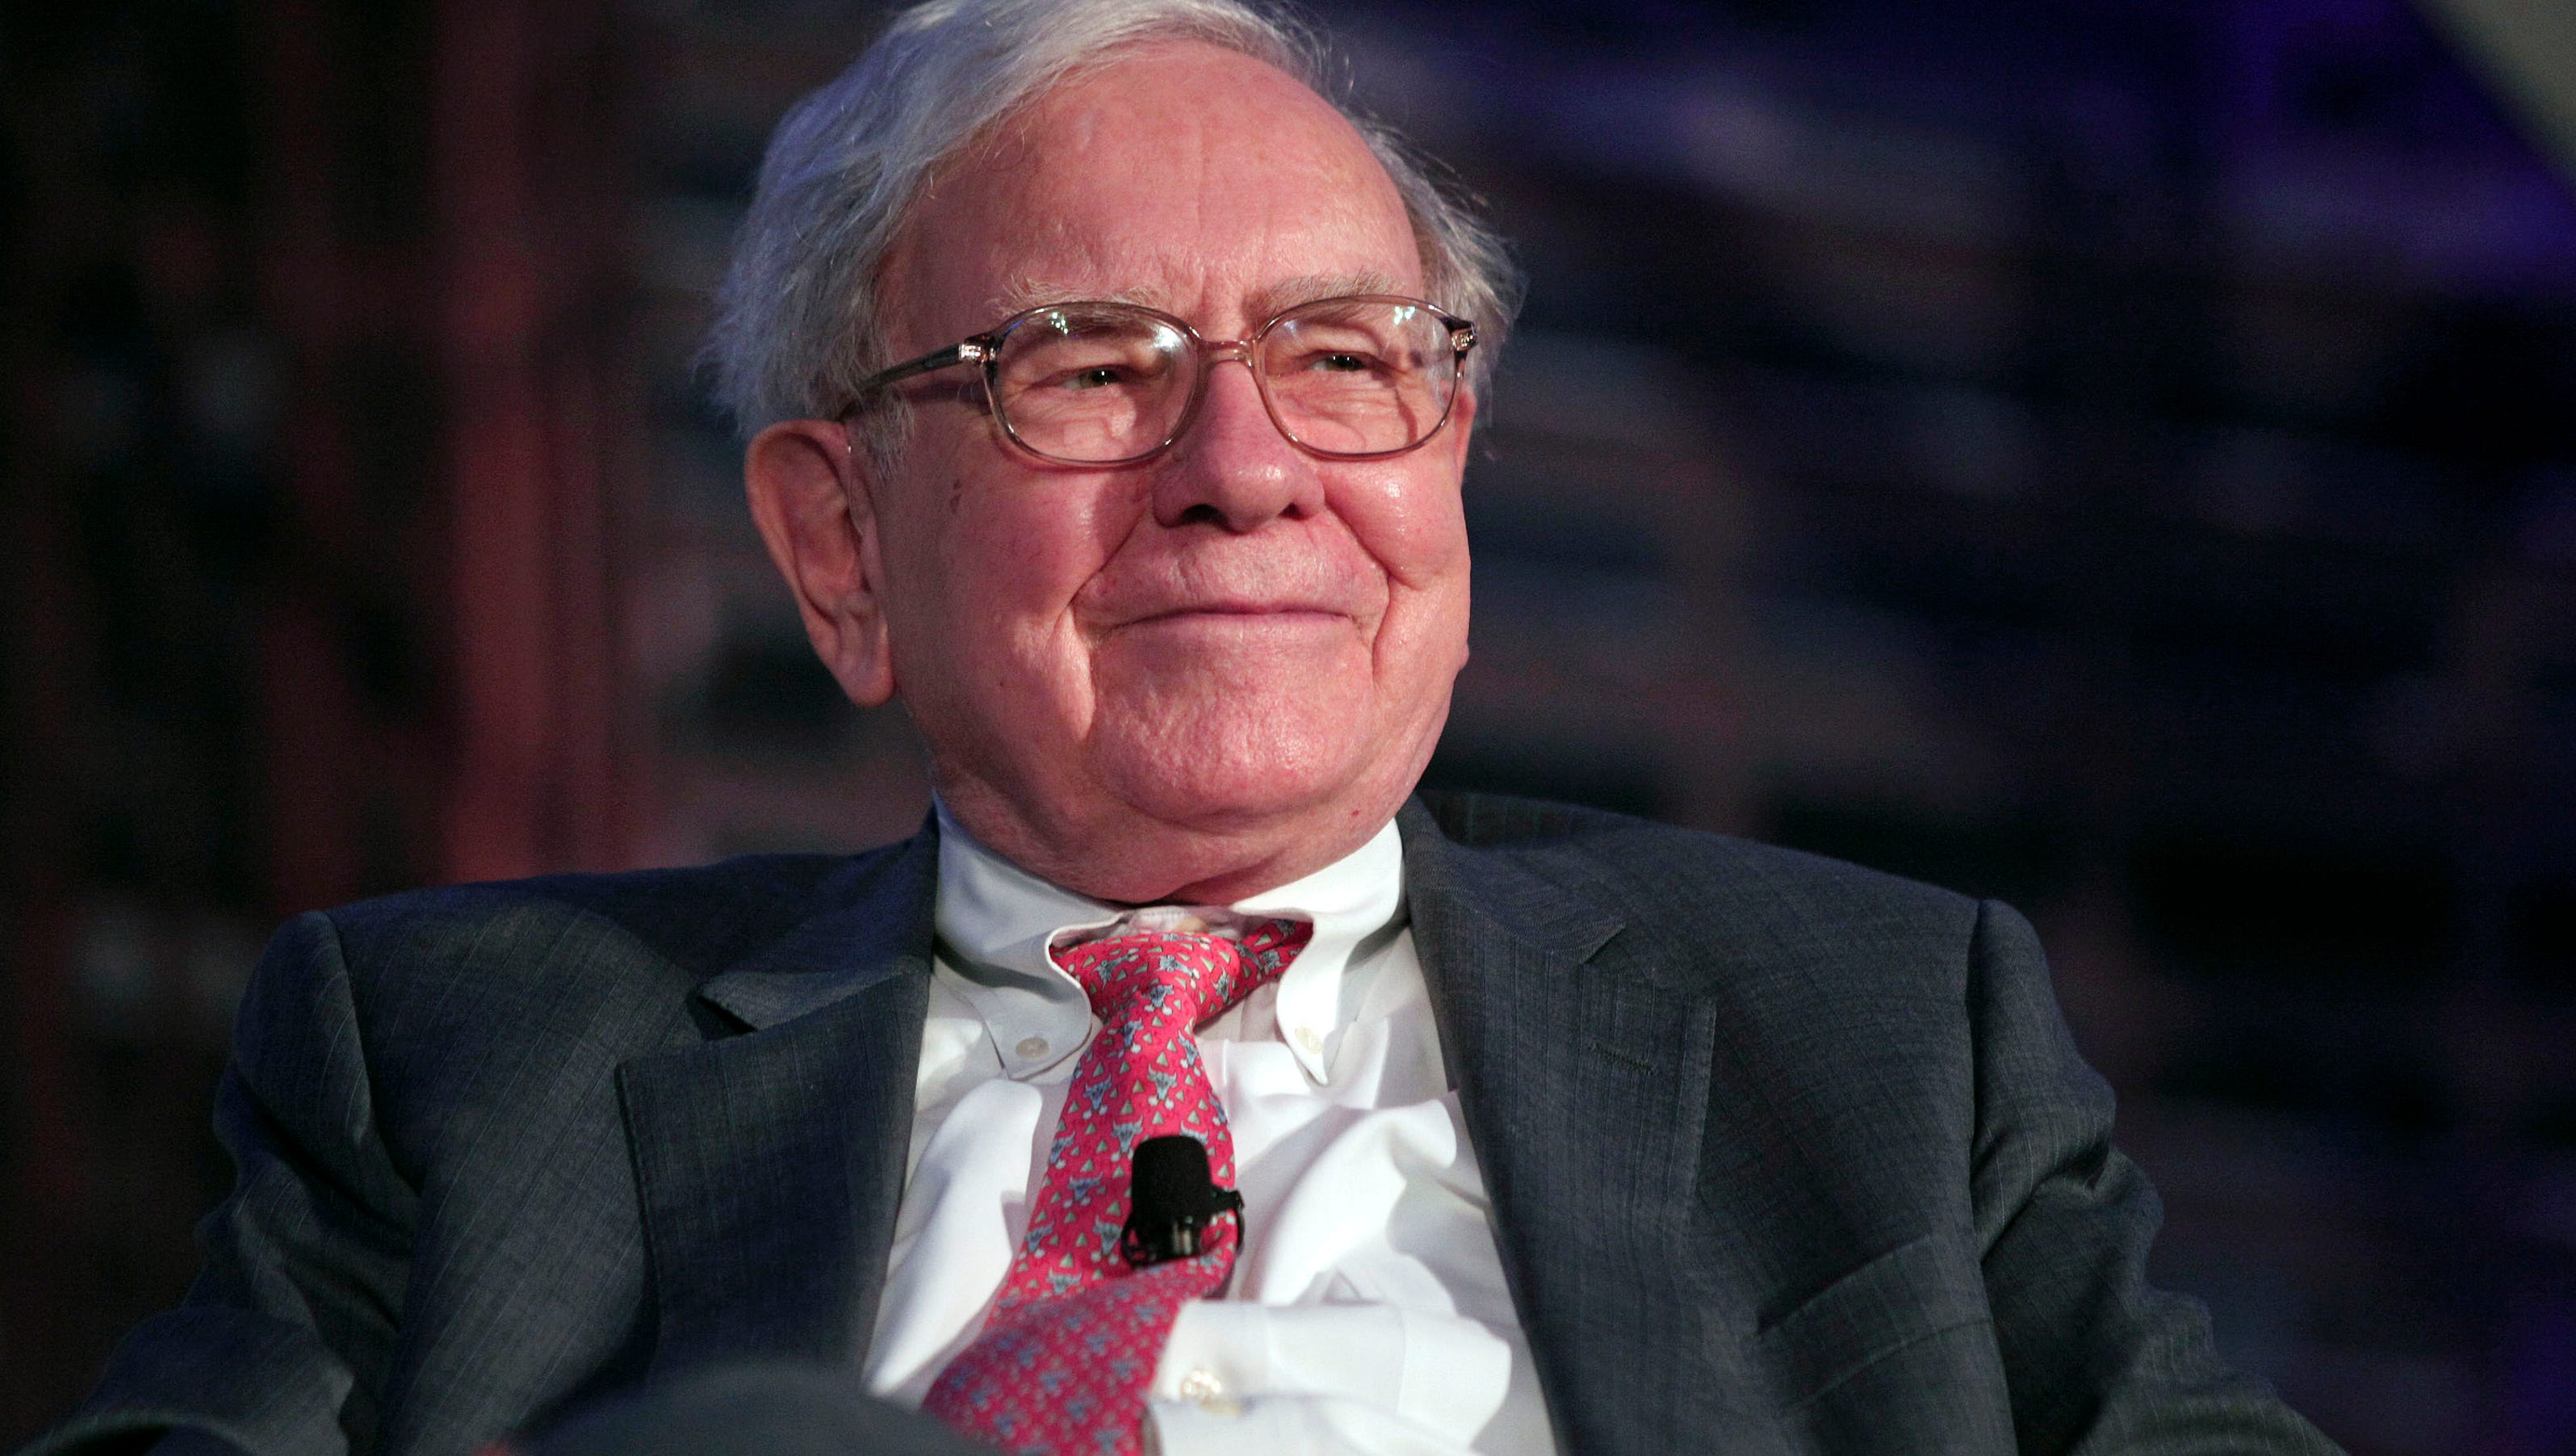 Warren Buffett's letter: Gender should never decide CEO